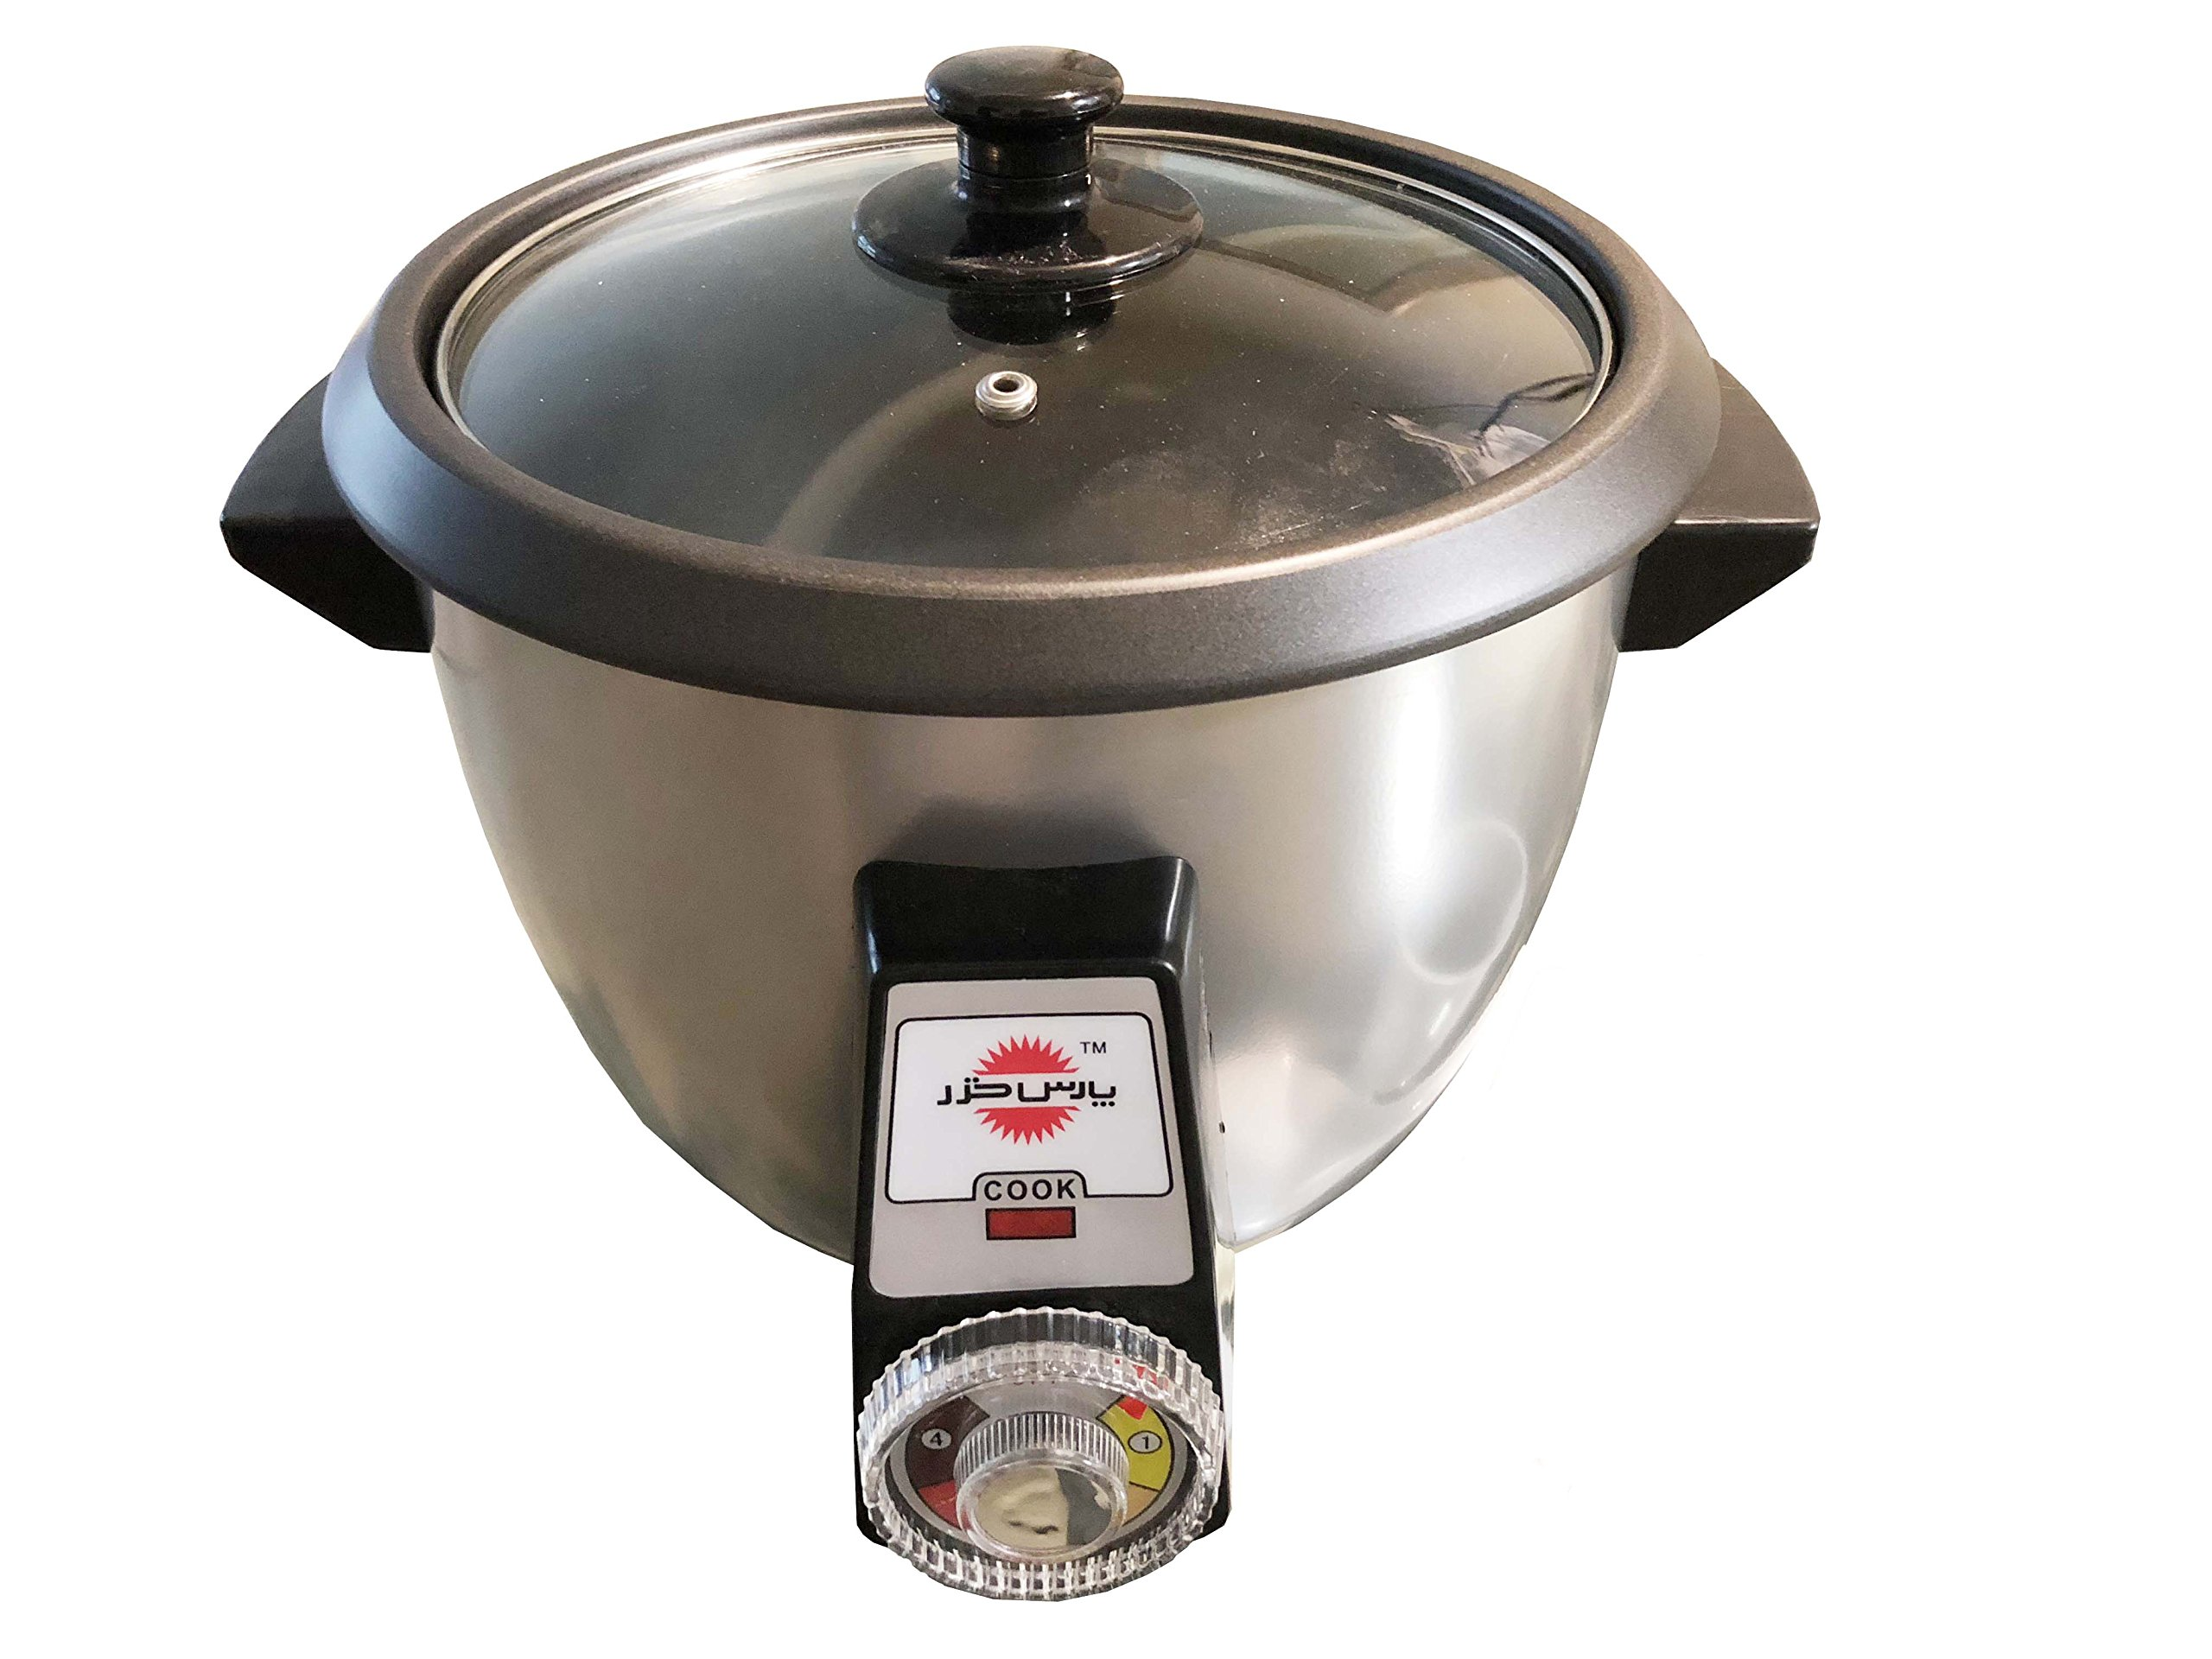 Pars Khazar Full Automatic Rice Cooker, 12 Cups (12 People) by Pars Khazar (Image #2)